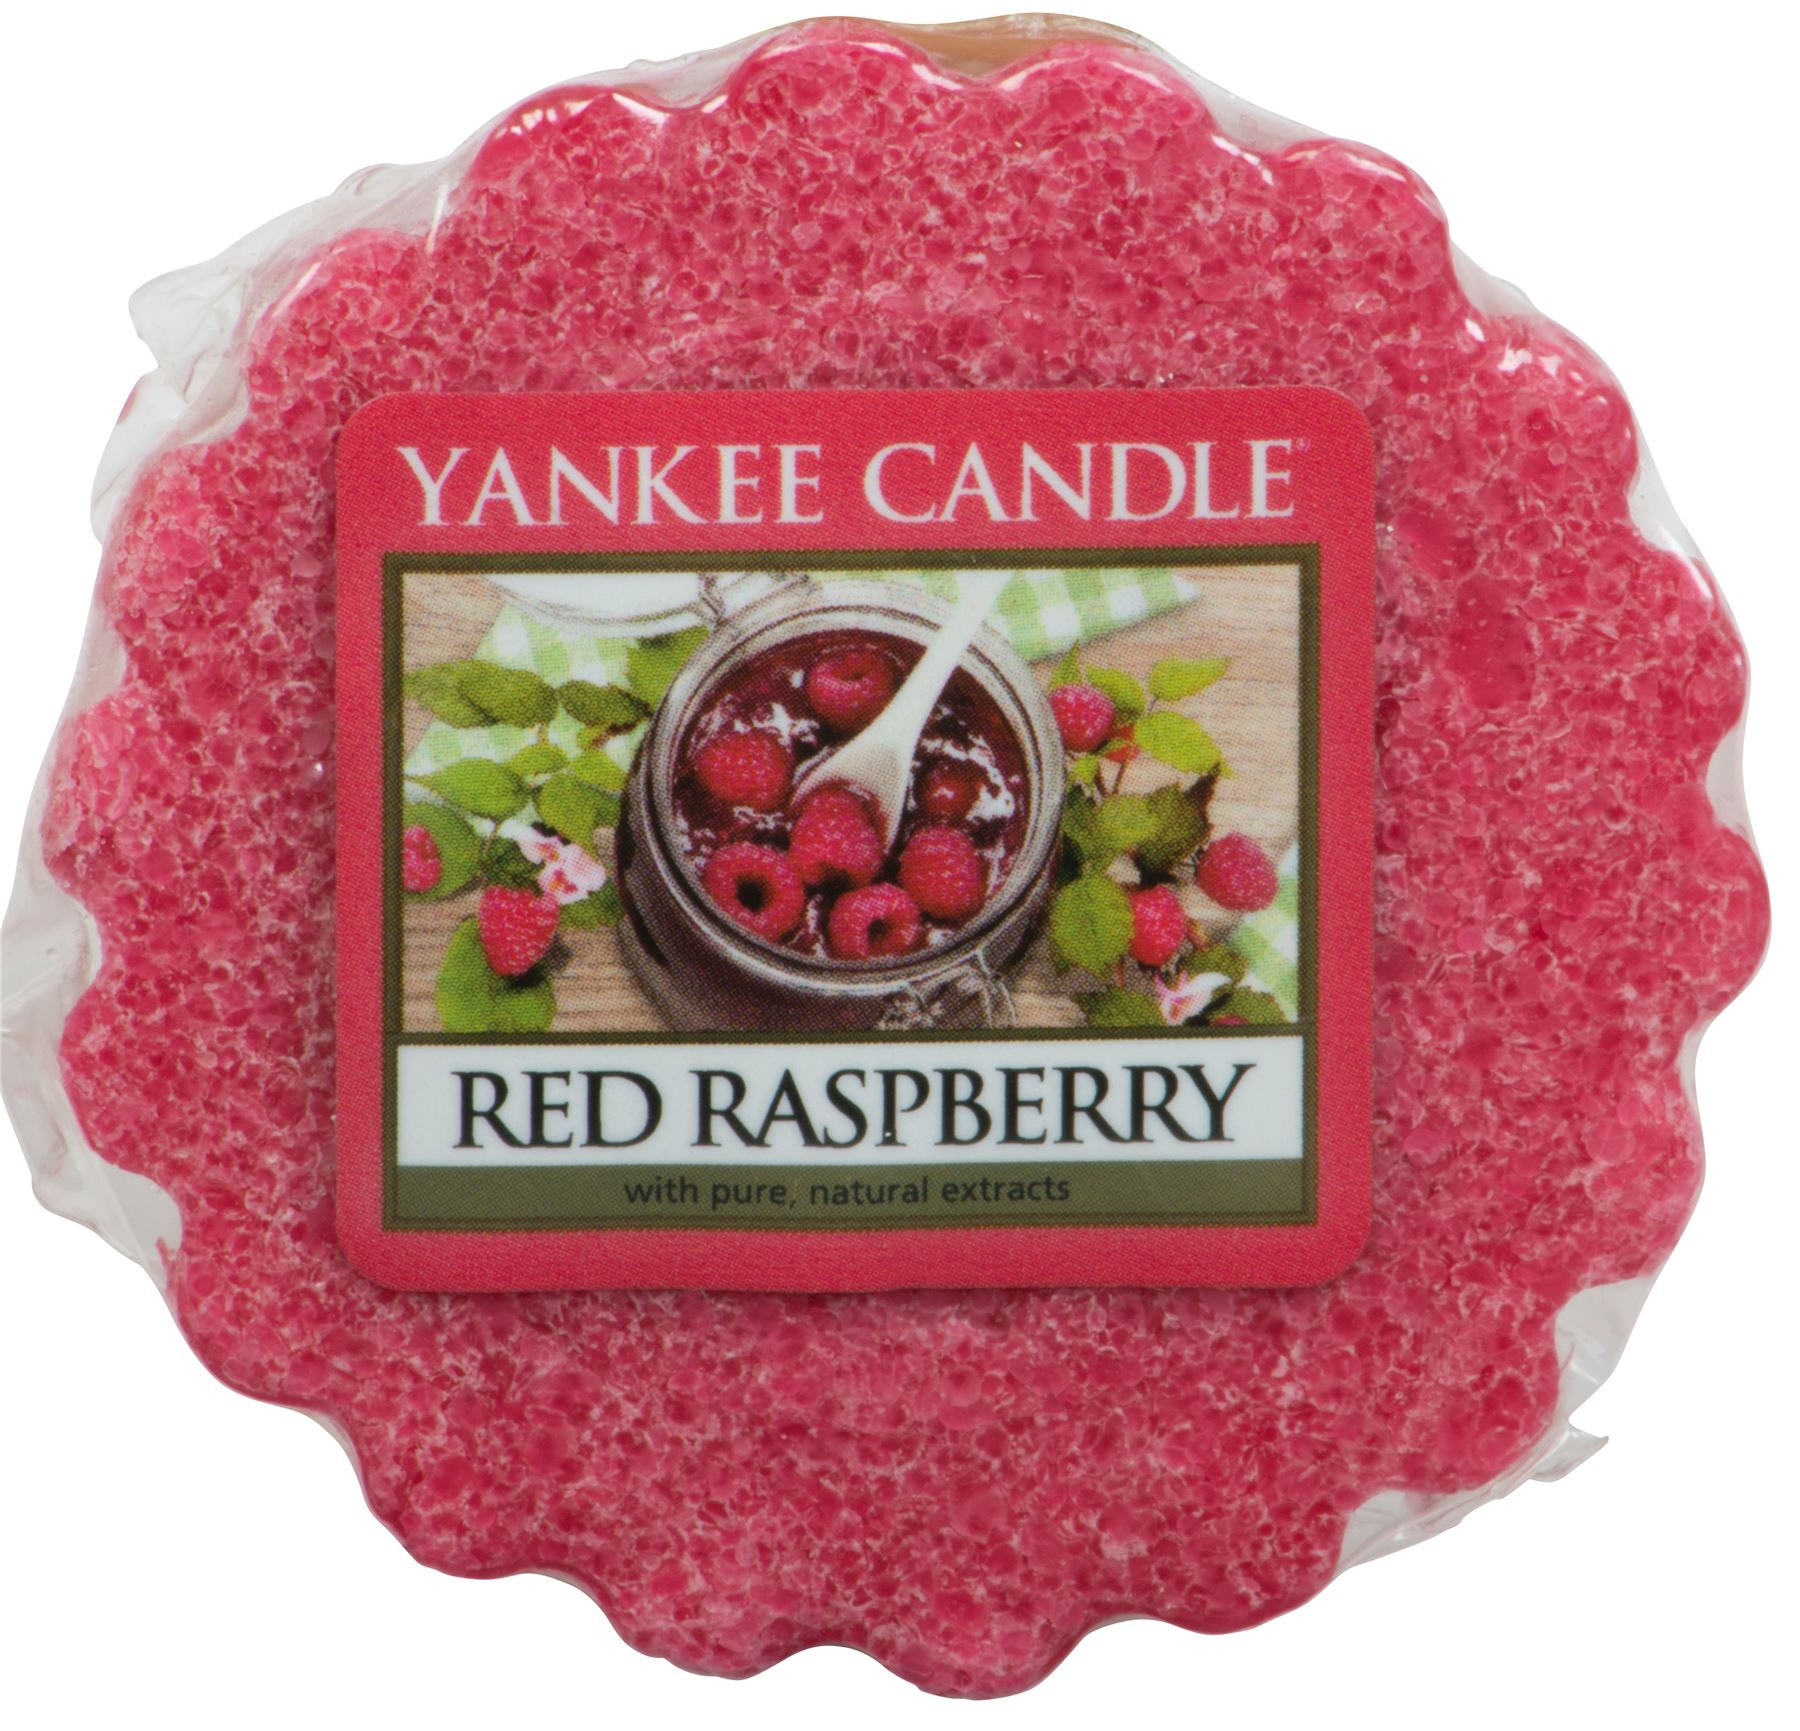 Yankee-Candle-Wax-Tart-Melts-2017-Including-New-Fragrances